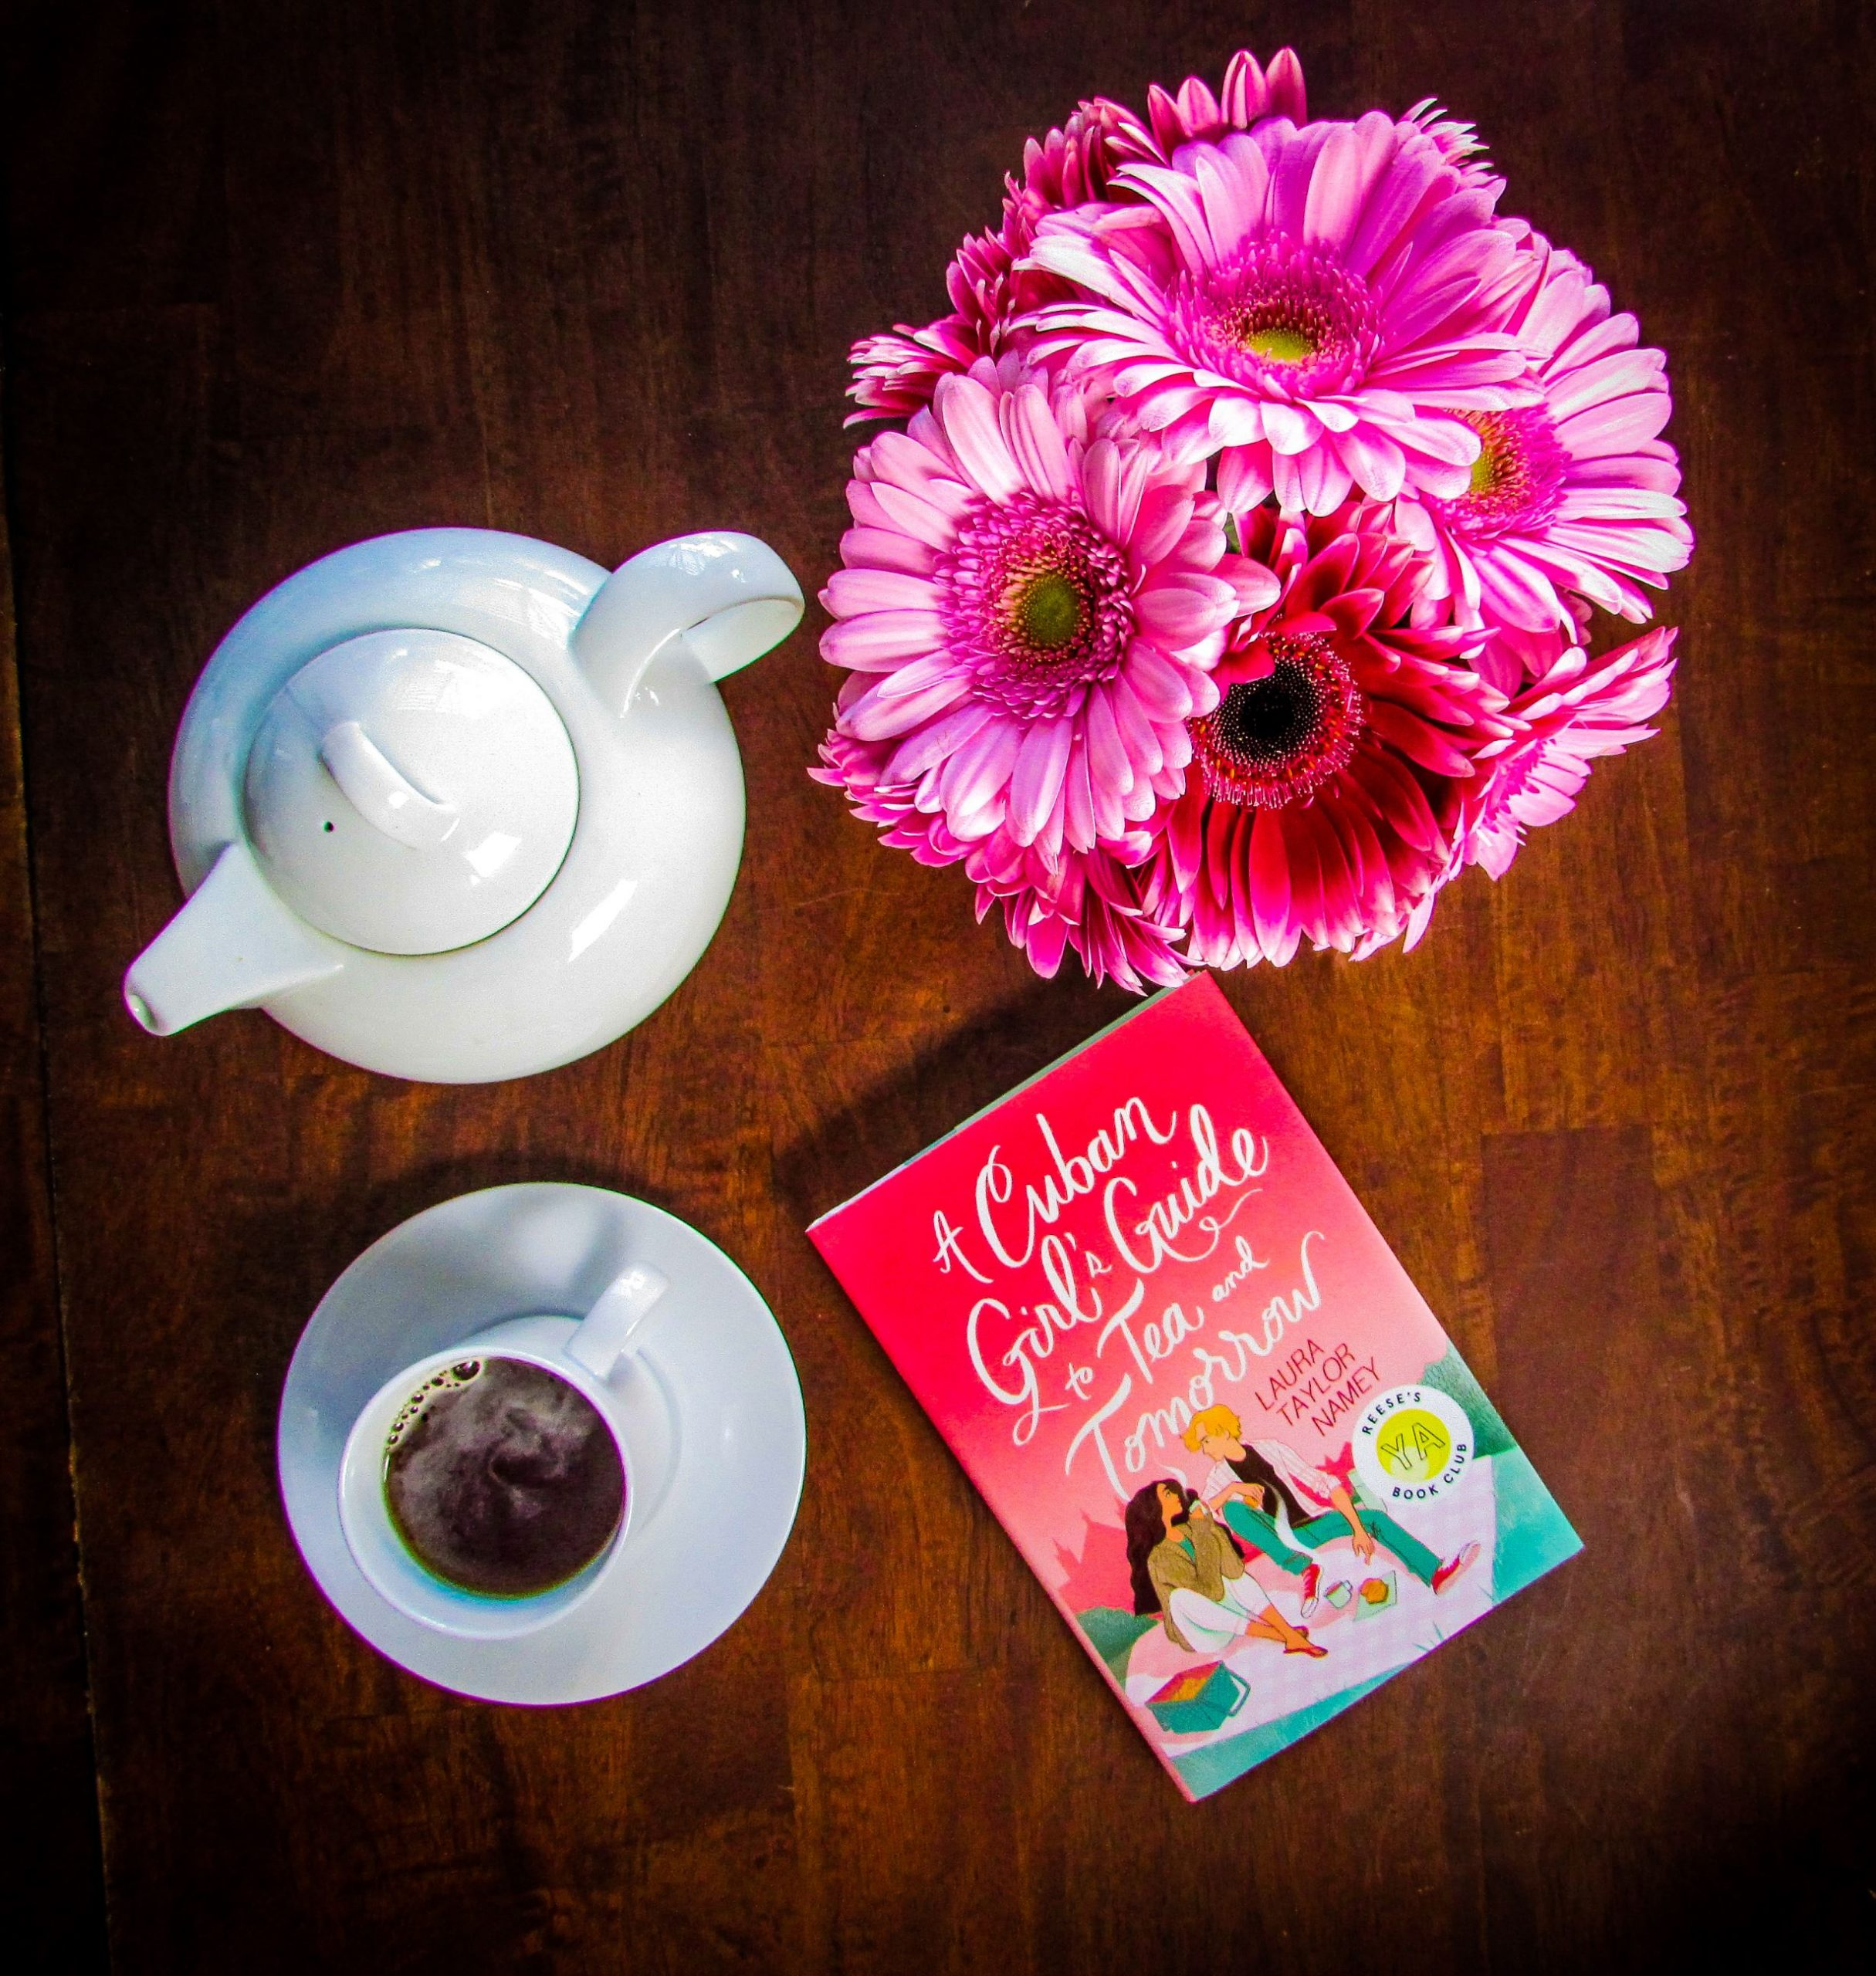 You are currently viewing A Cuban Girl's Guide to Tea and Tomorrow by Laura Taylor Namey